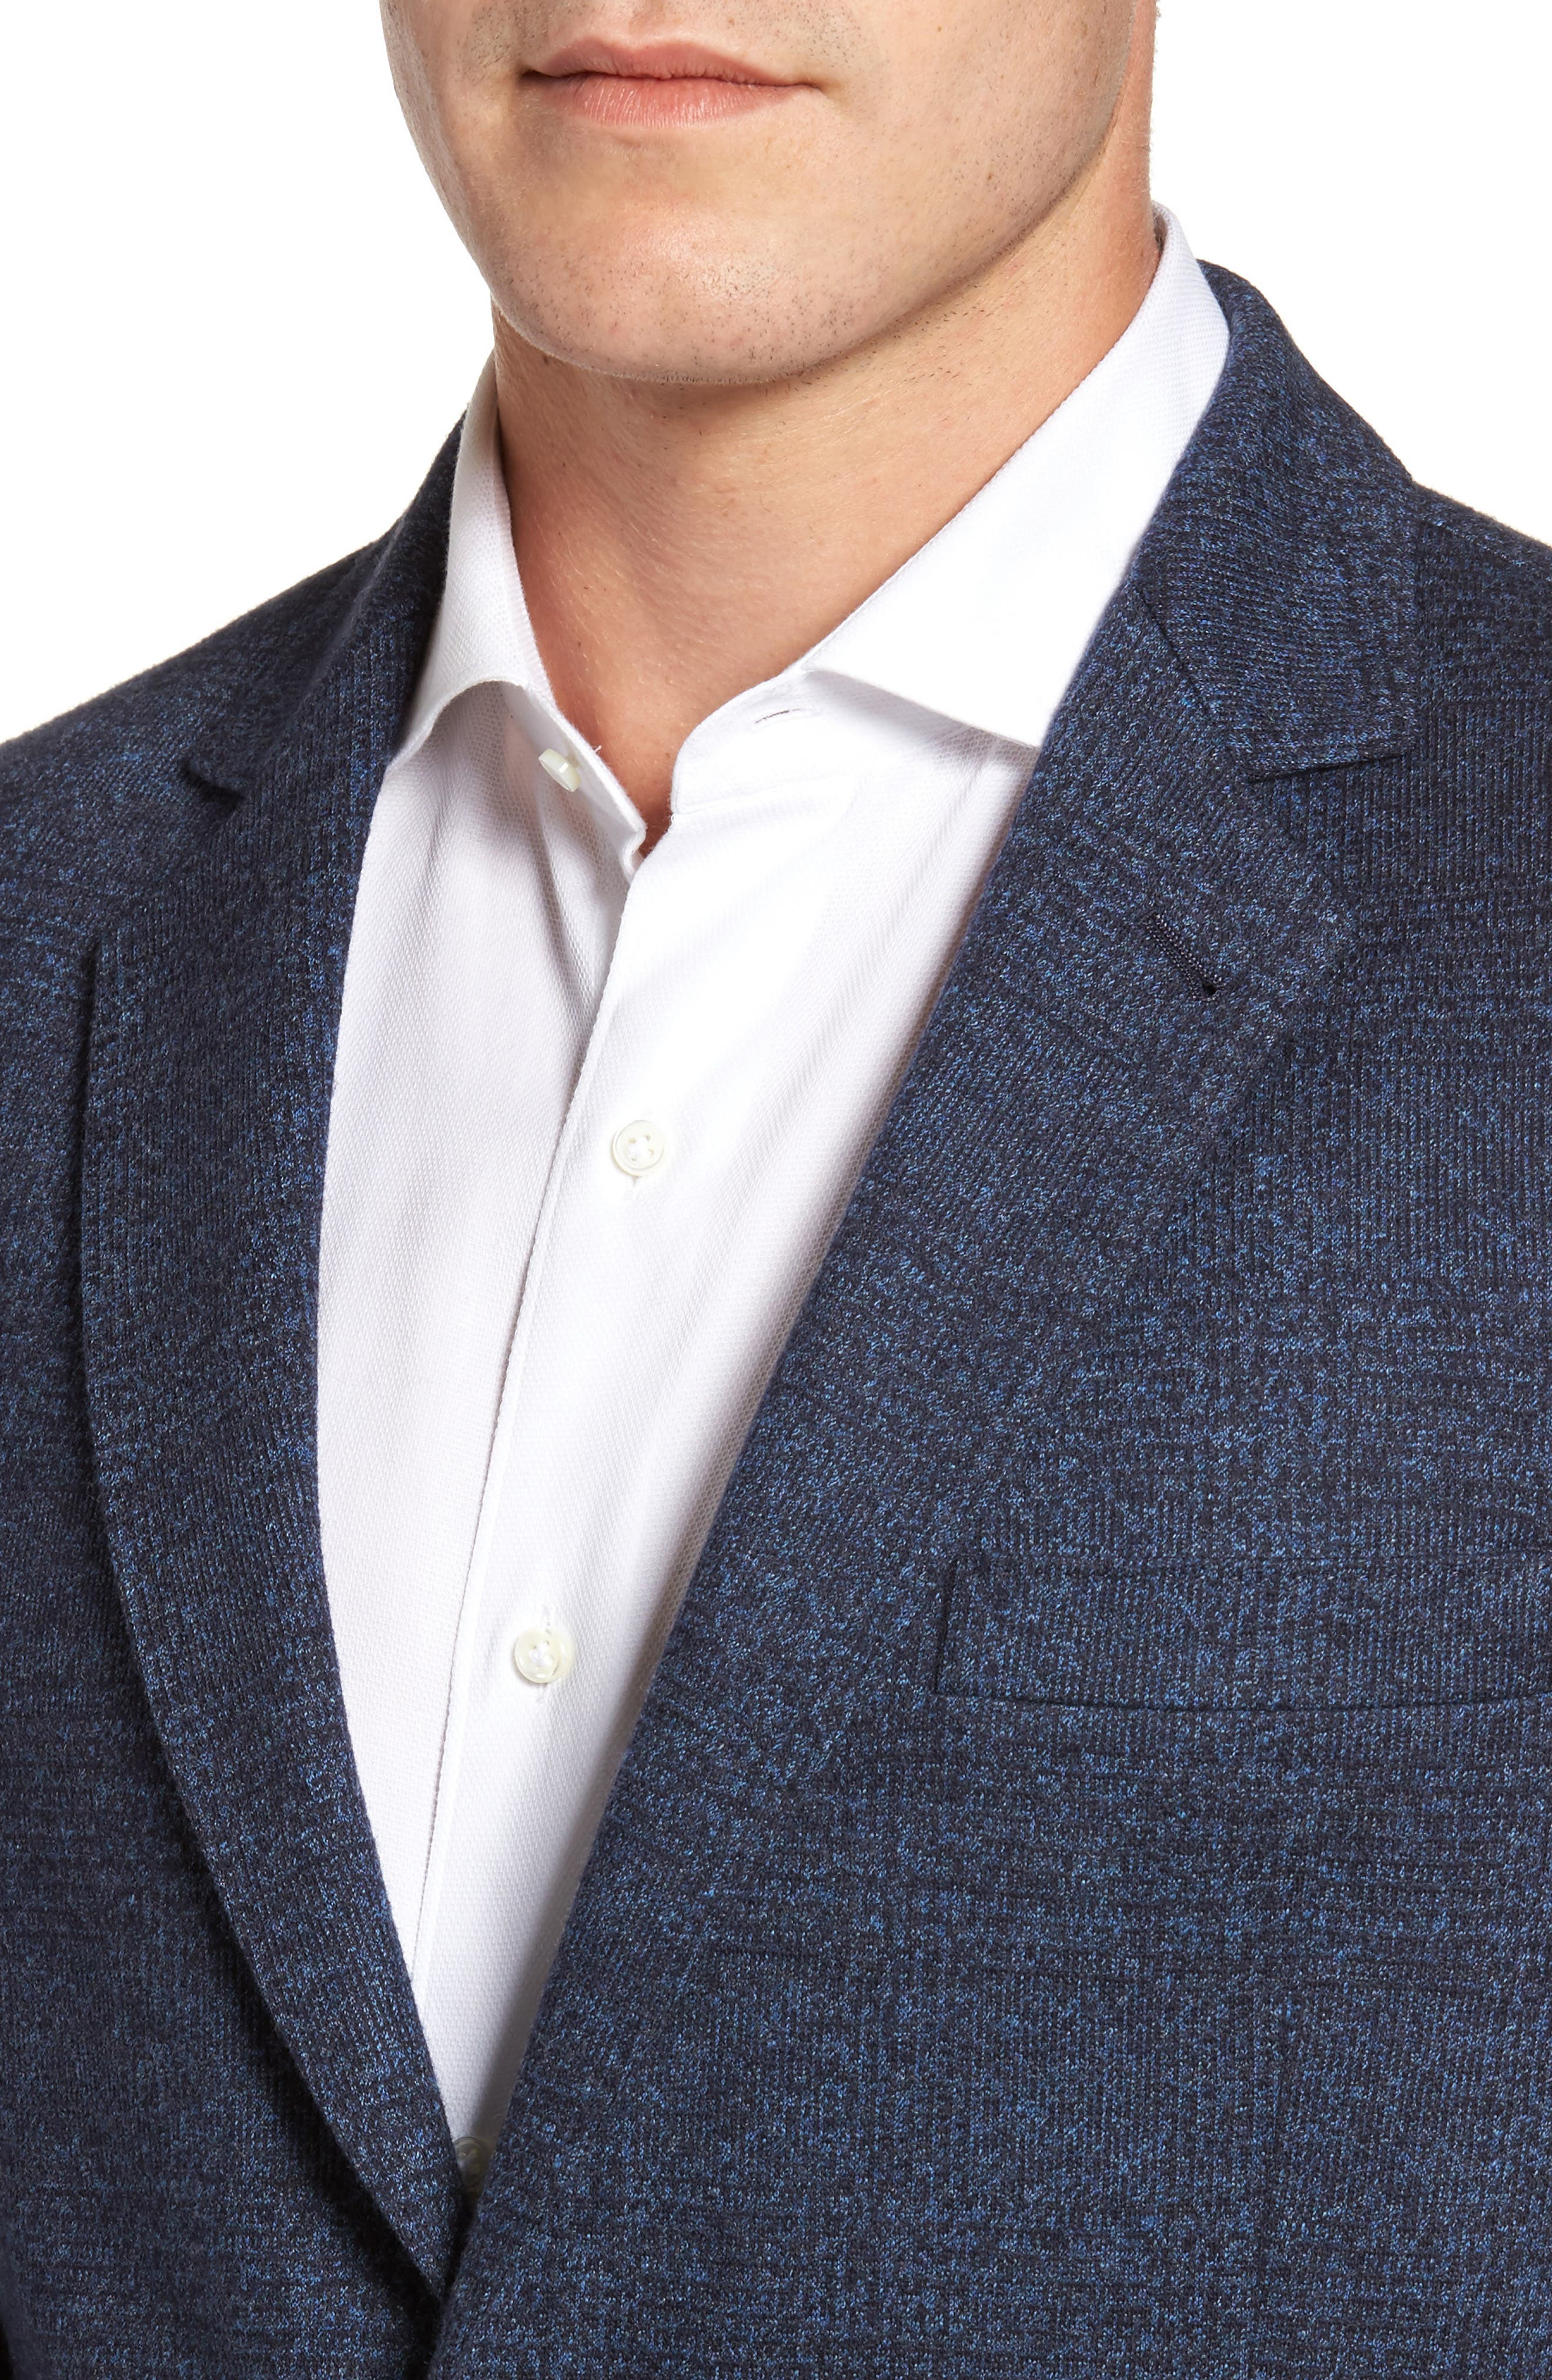 Classic Fit Cotton & Wool Jersey Sport Coat,                             Alternate thumbnail 4, color,                             420